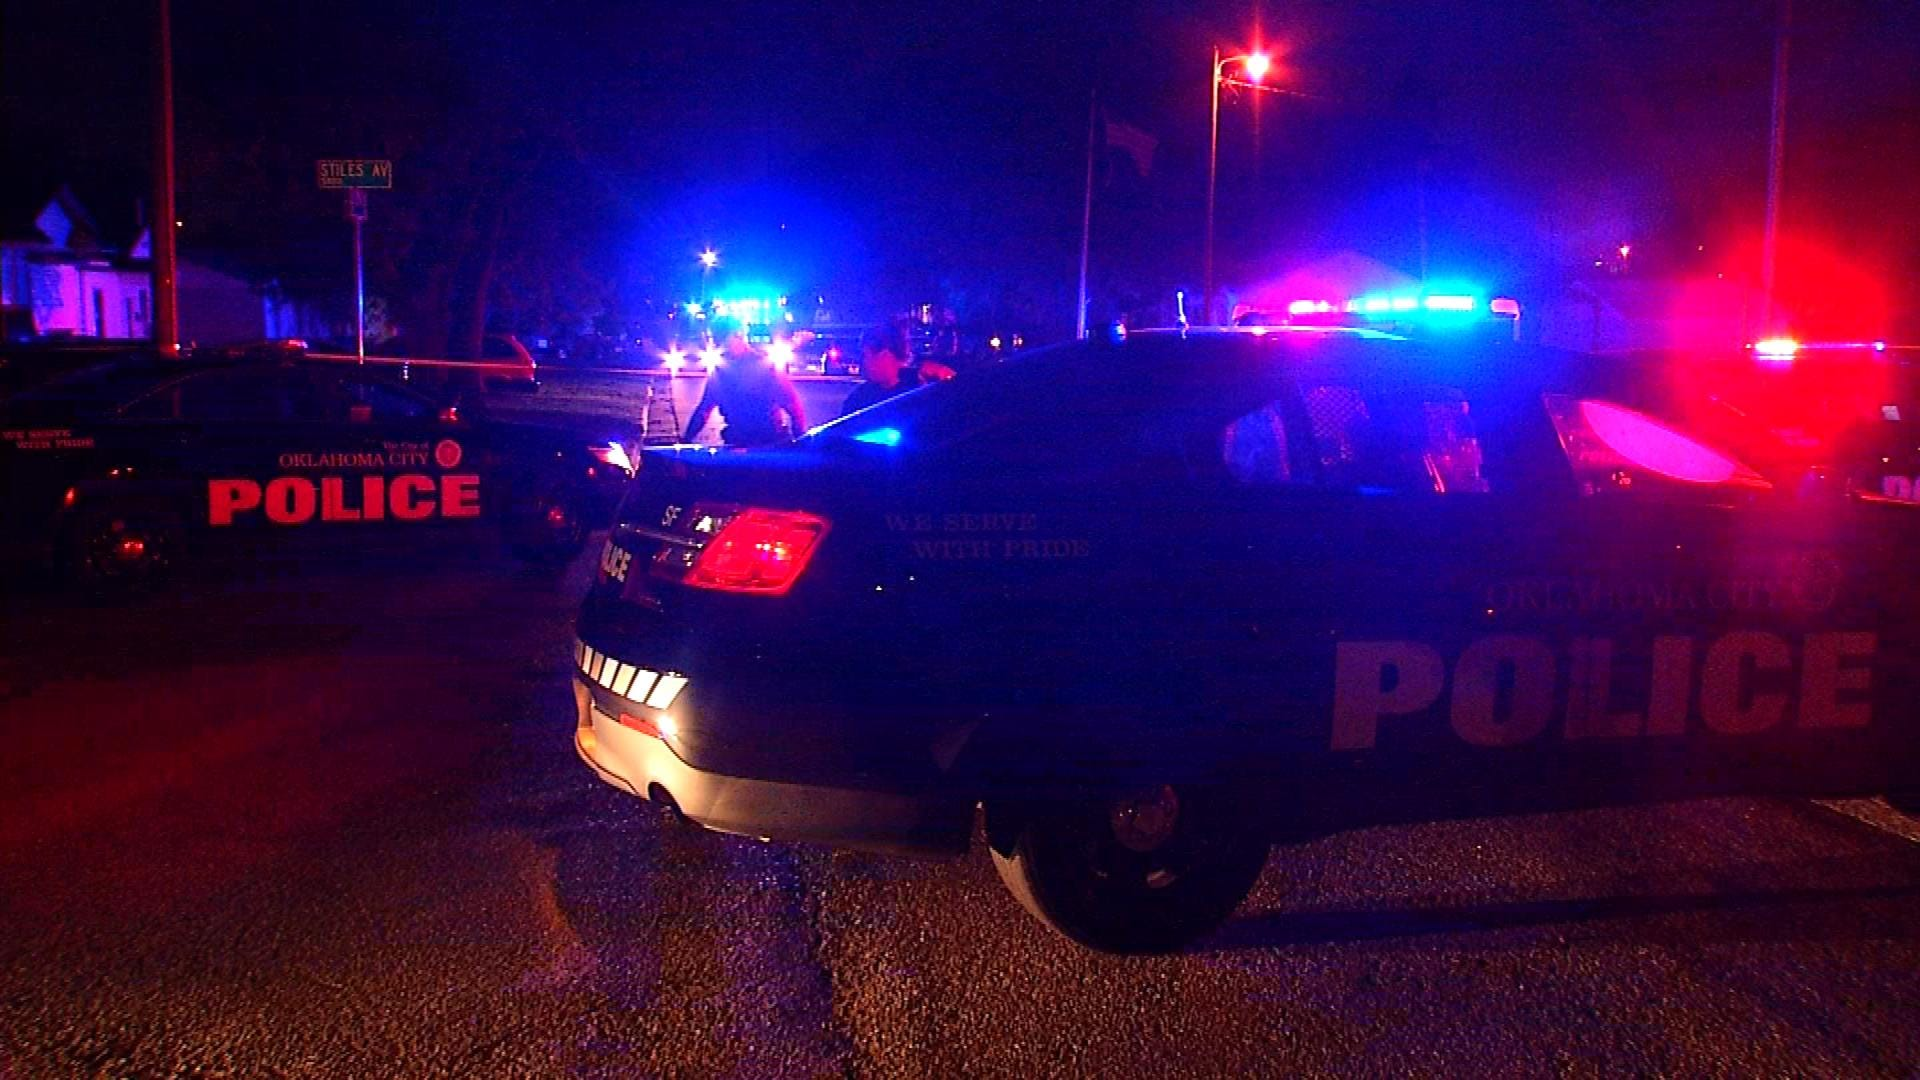 Deaf Community Leaders React To Deadly OKCPD Shooting